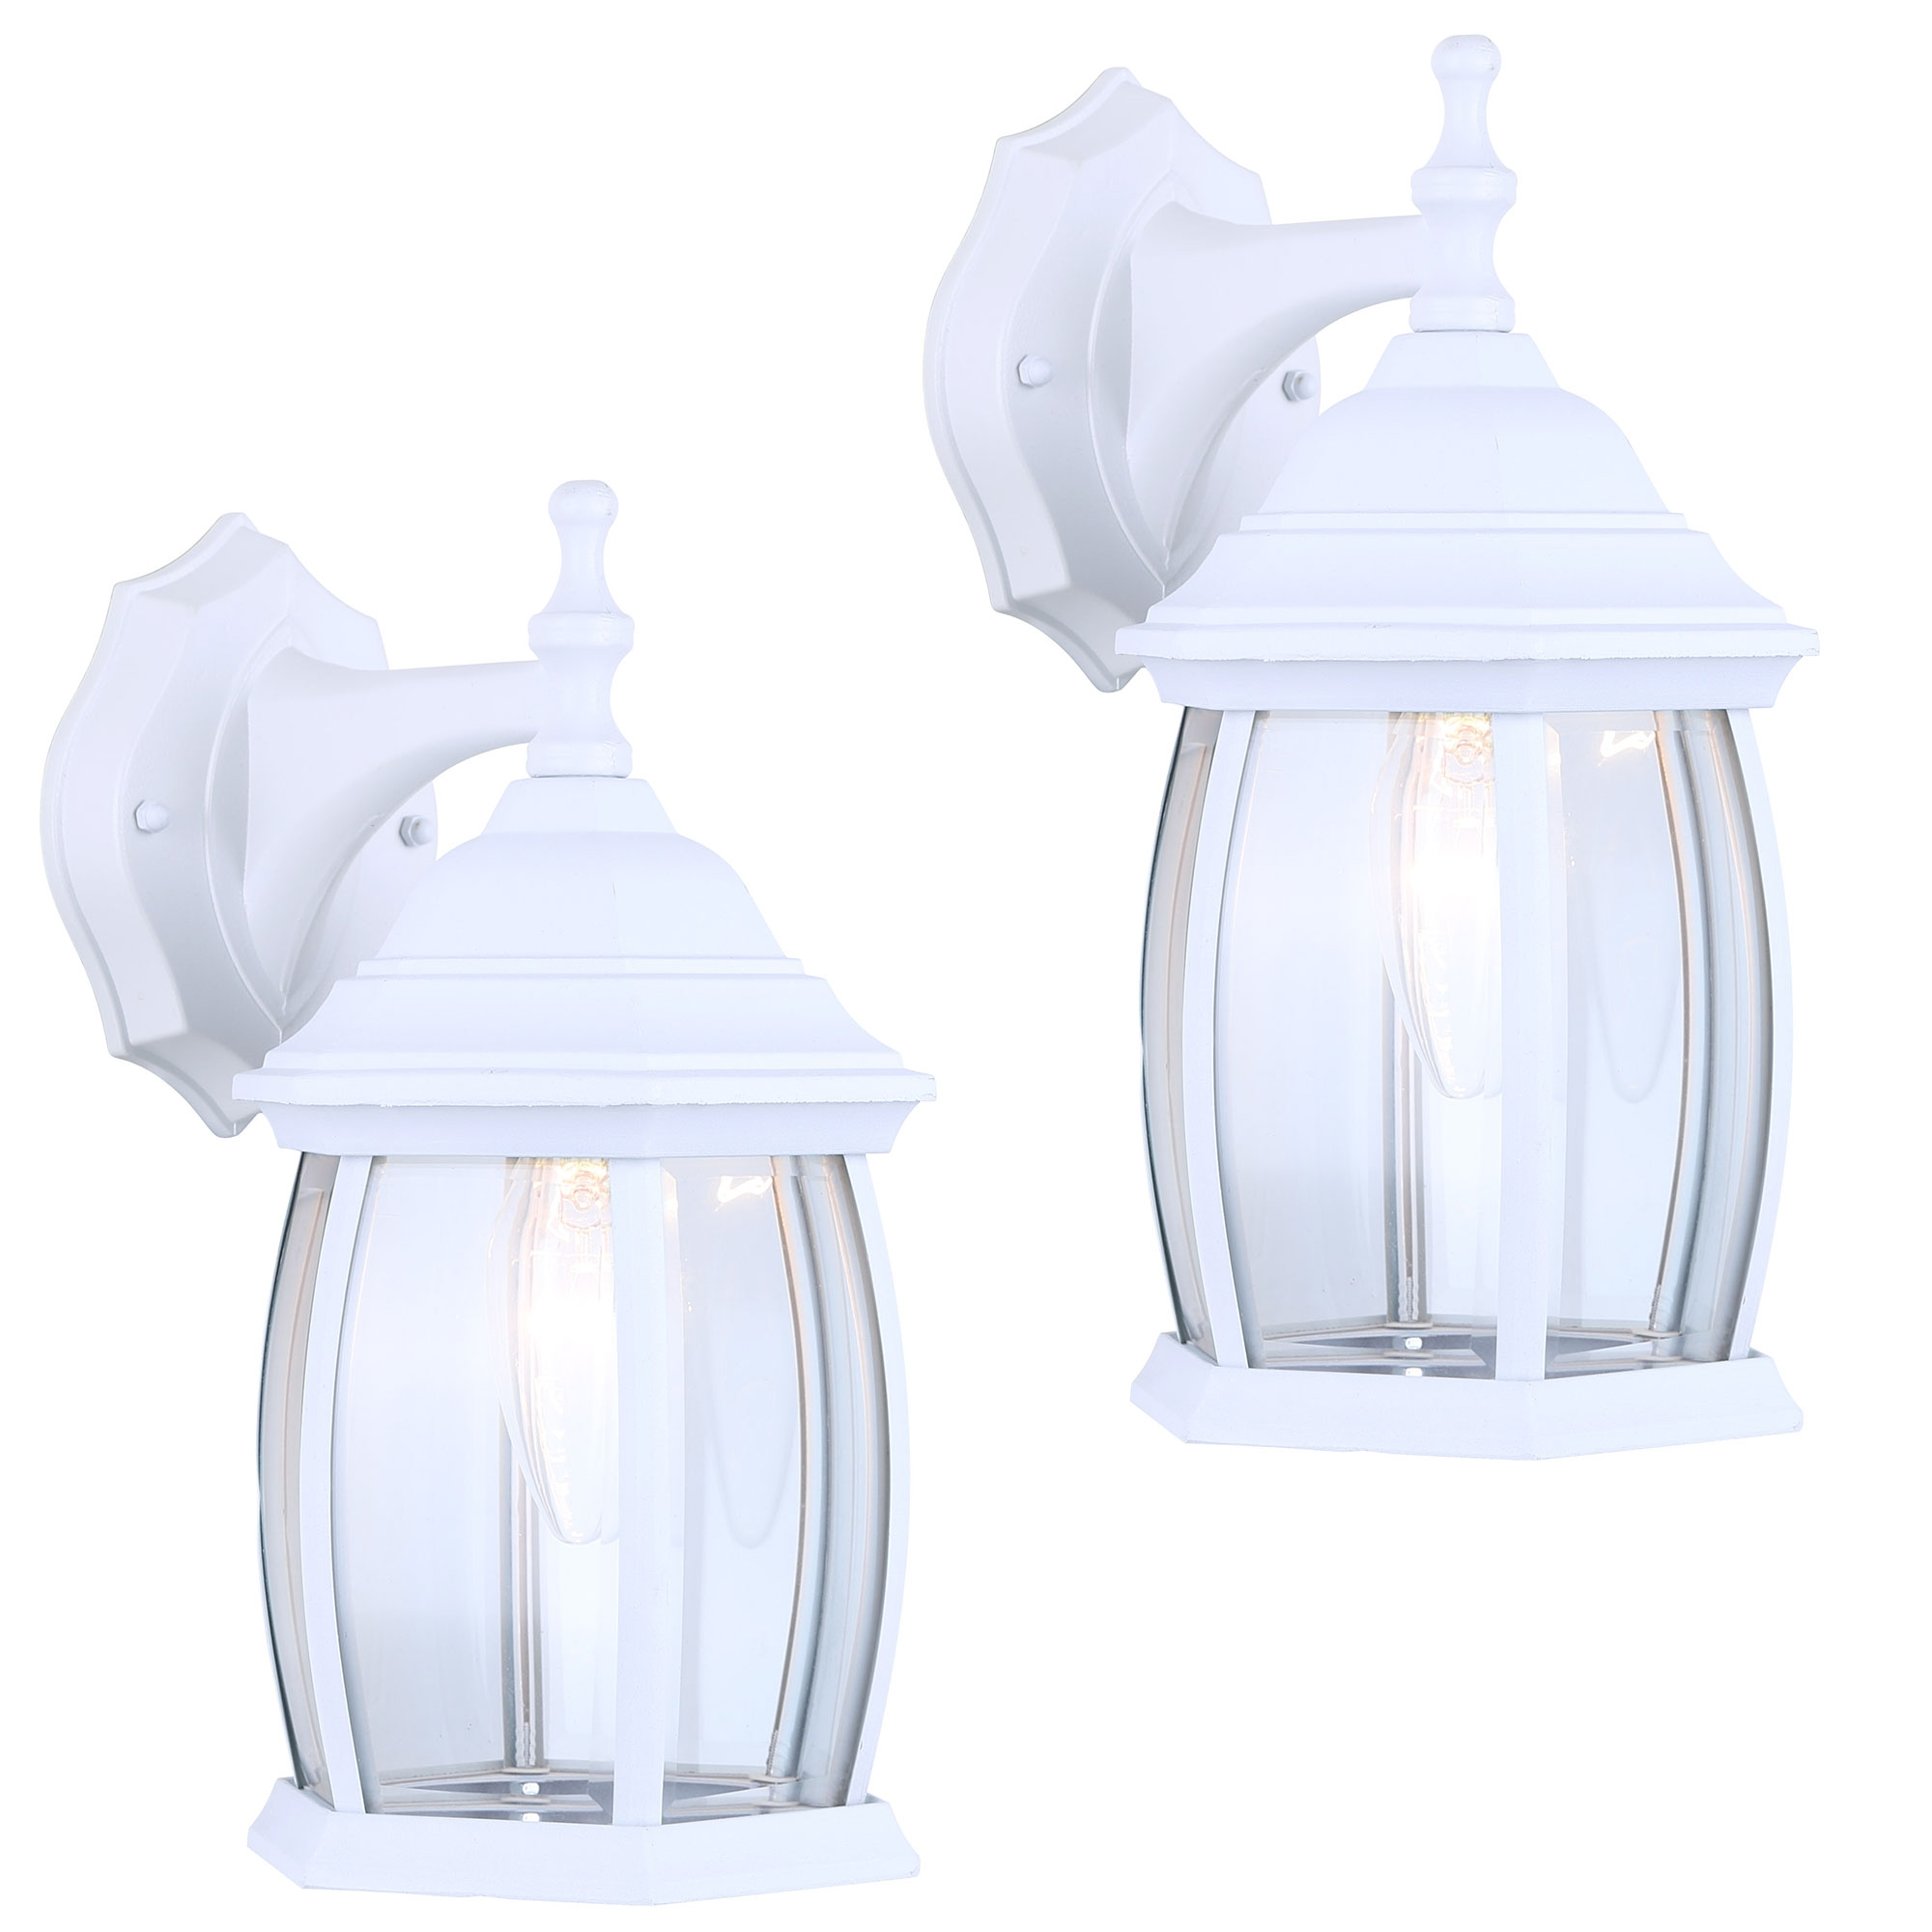 2 Pack Of Exterior Outdoor Light Fixture Wall Lantern Sconce Clear Curved Beveled Glass White Finish Walmart Com Walmart Com